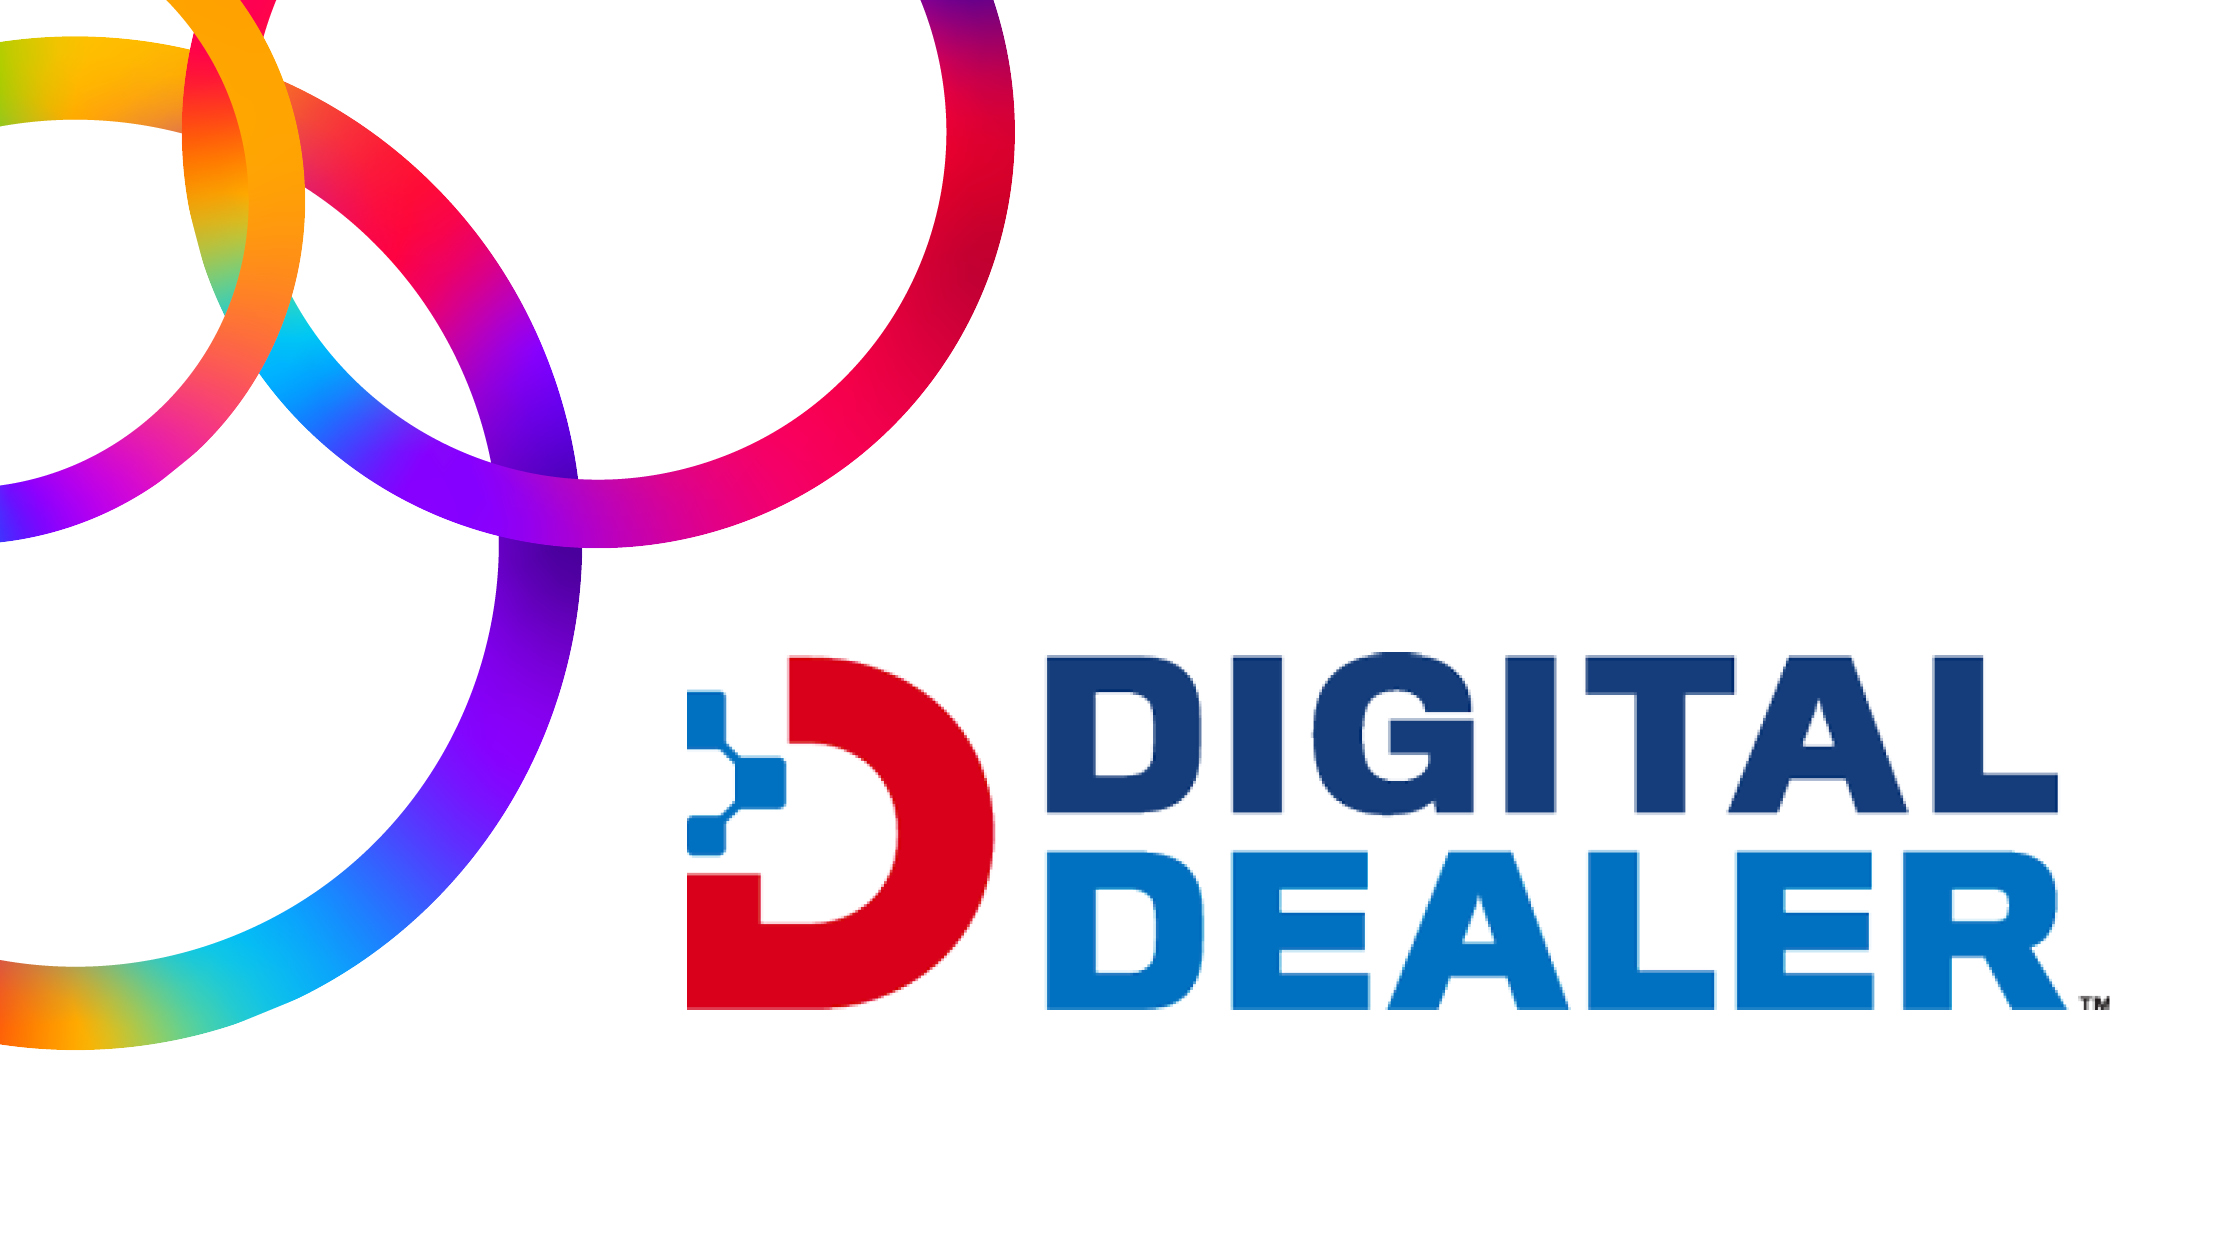 360 AUTO's CEO gives CX Talk at 2020 Digital Dealer